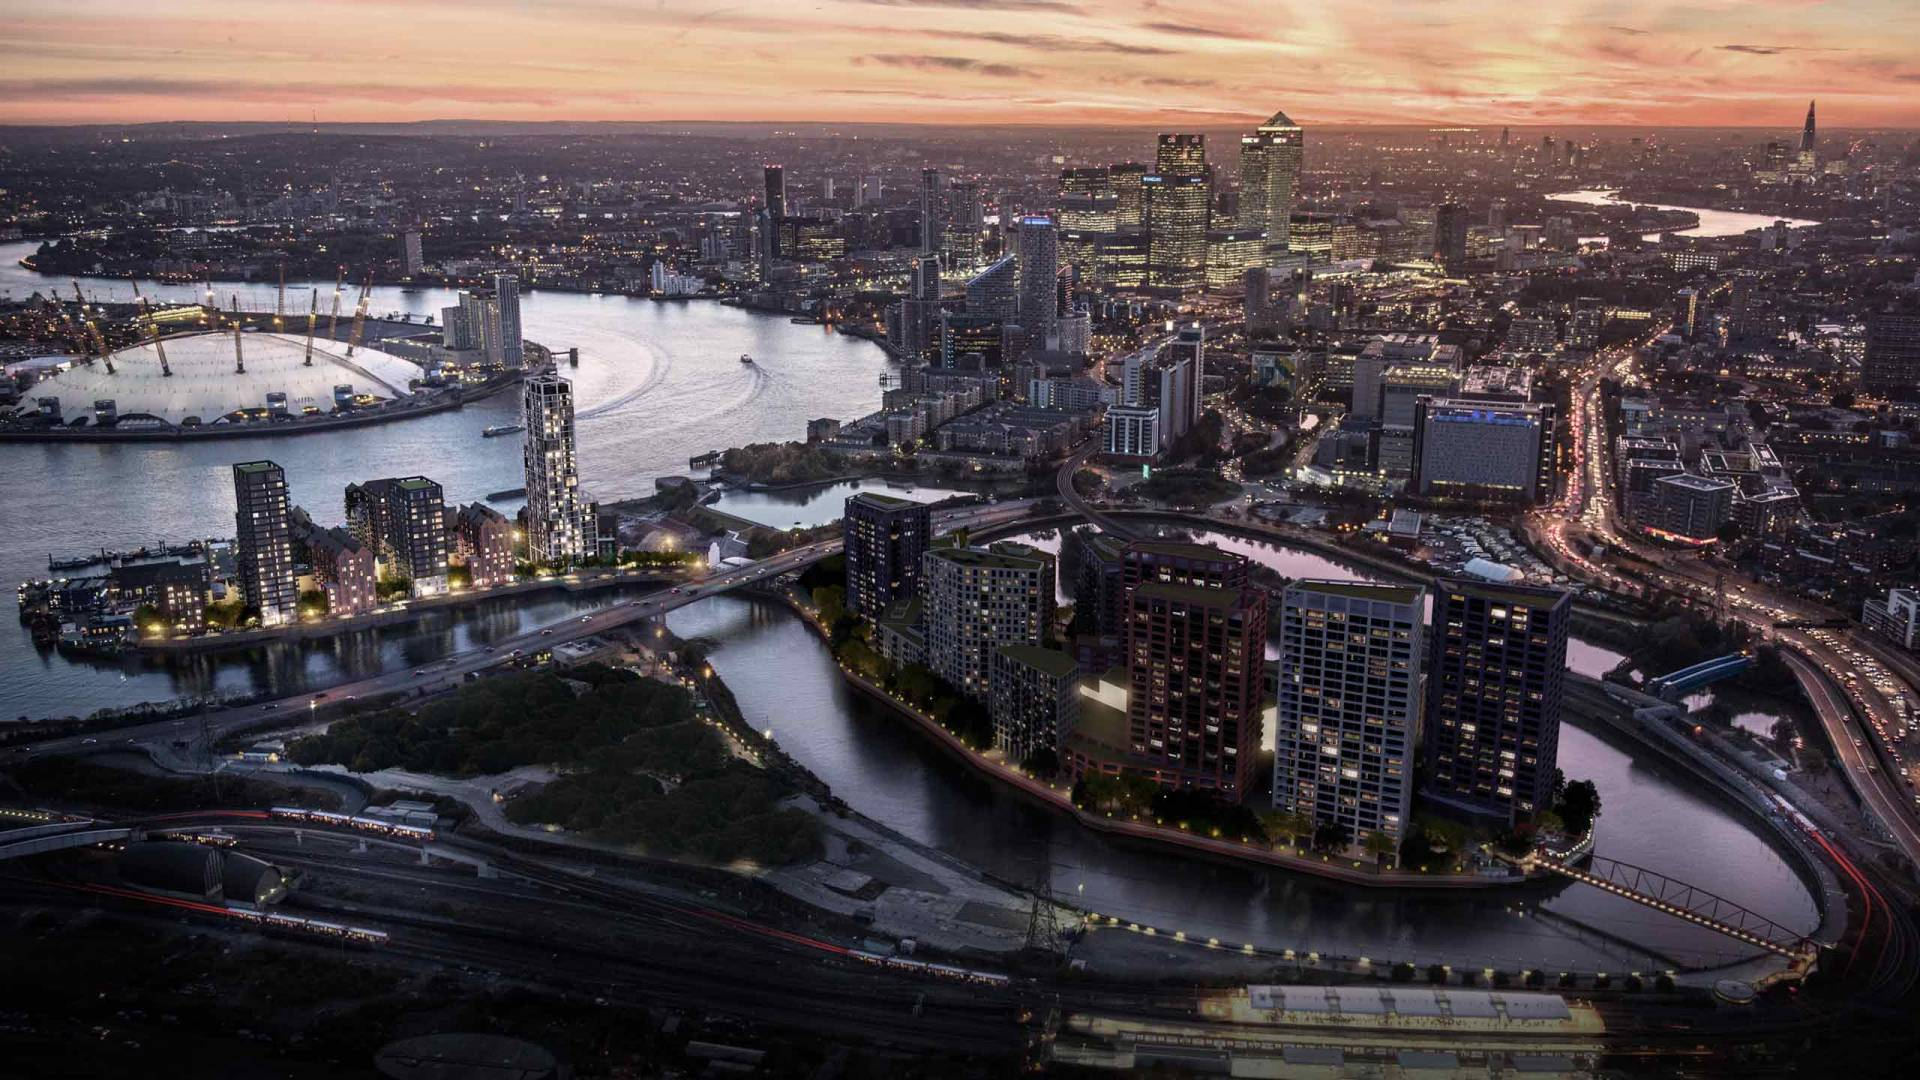 london-city-island-aerial-view-goodluck-hope-o2-canary-wharf